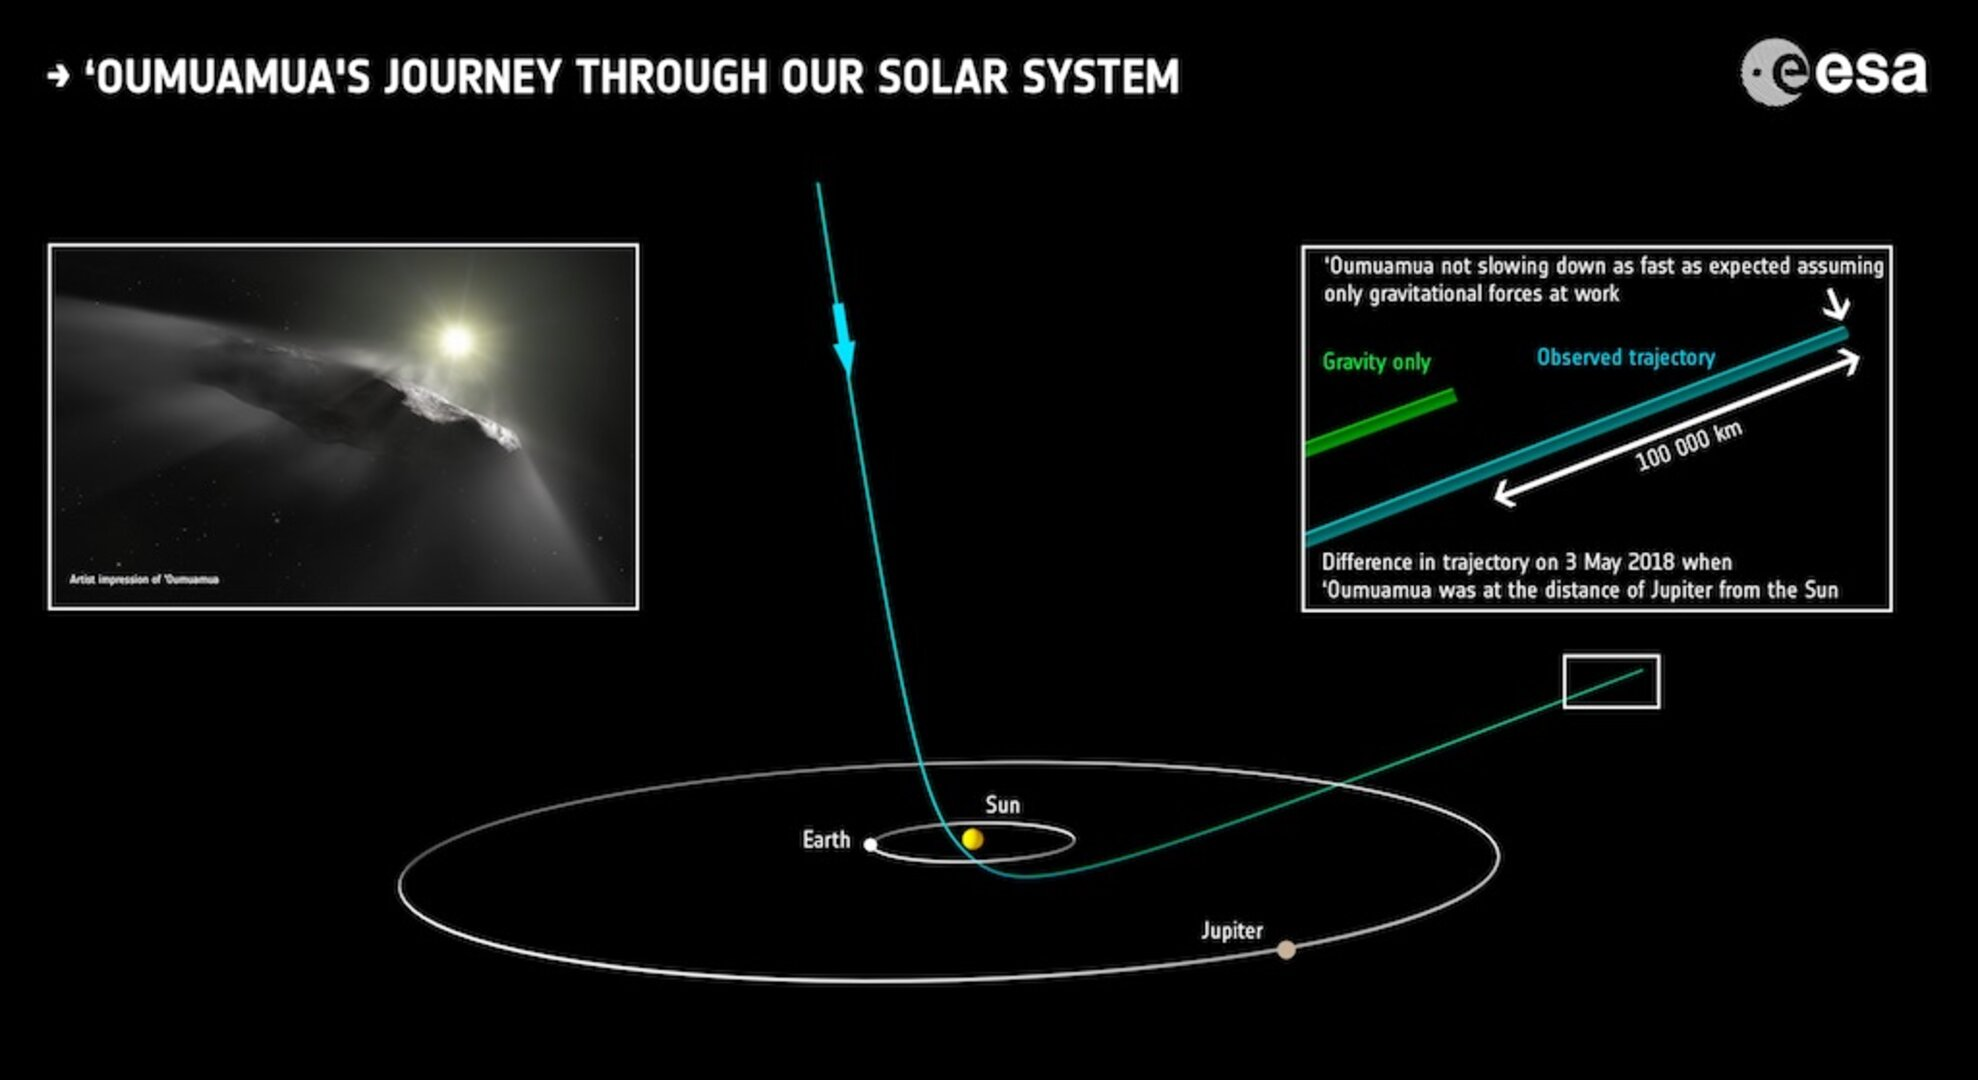 'Oumuamua's journey through our Solar System